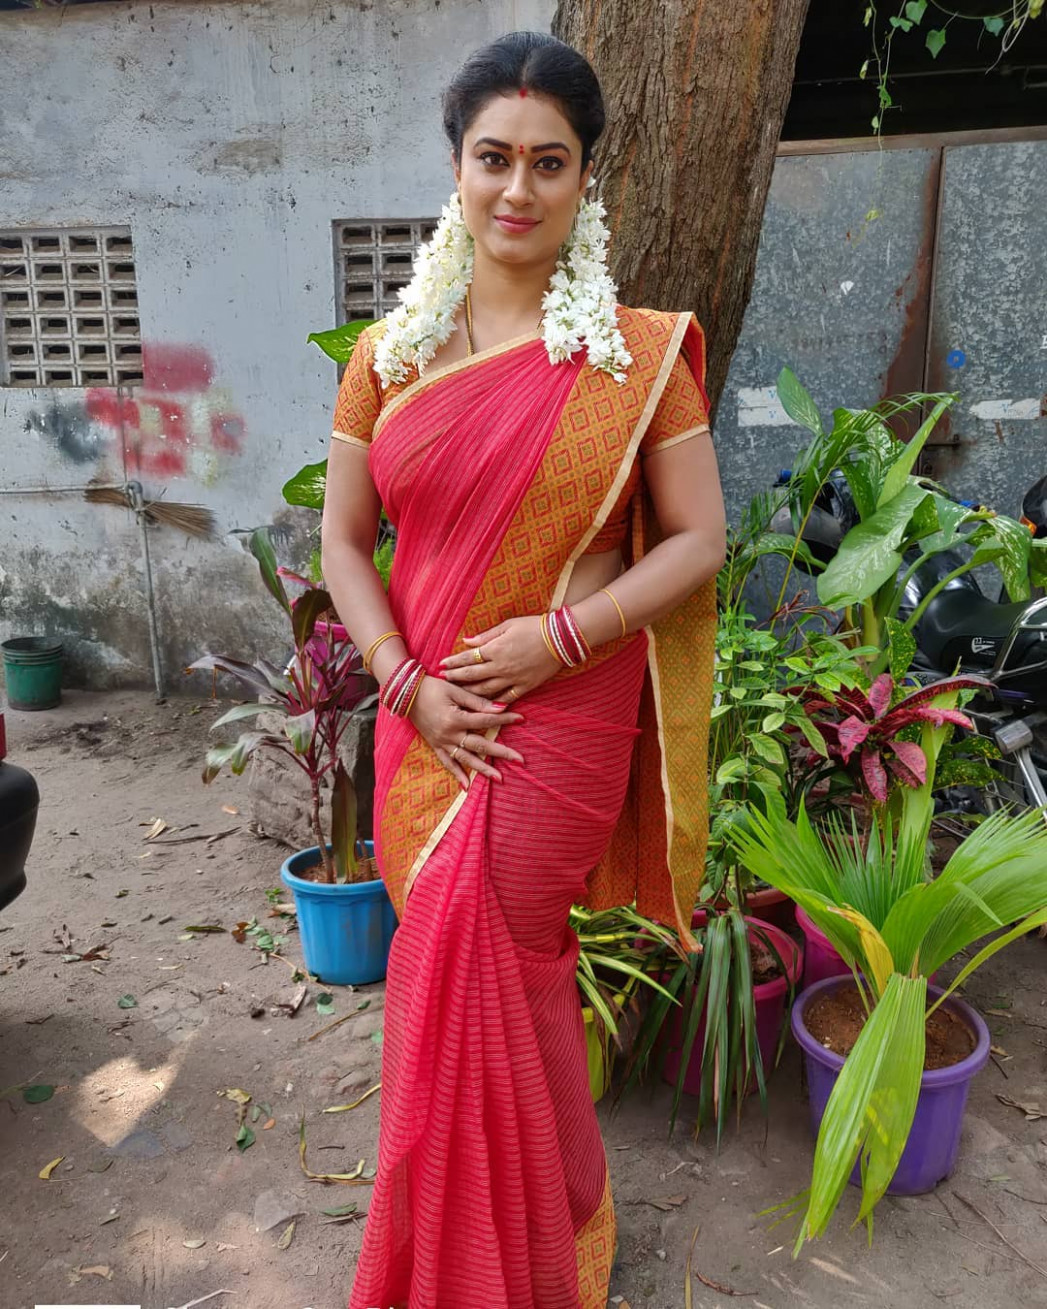 Amazing Indian Women in Saree- Greatest Photo Gallery!